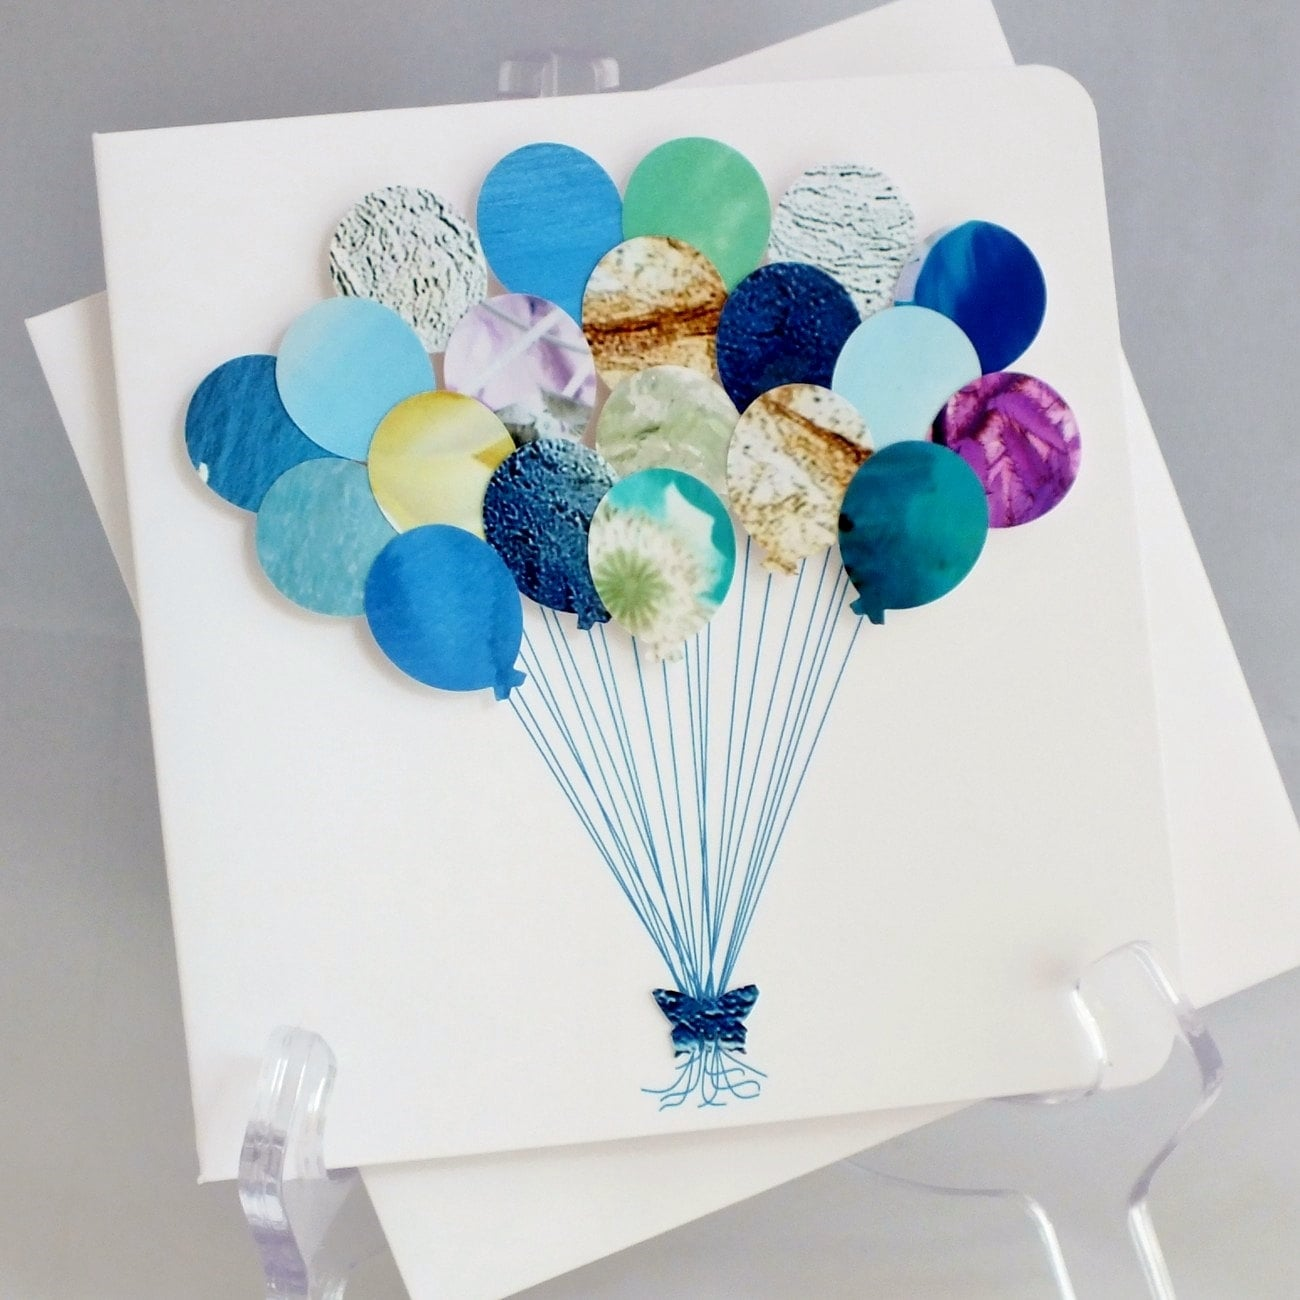 Handmade 3D 'Balloons' Card Happy Birthday Card By